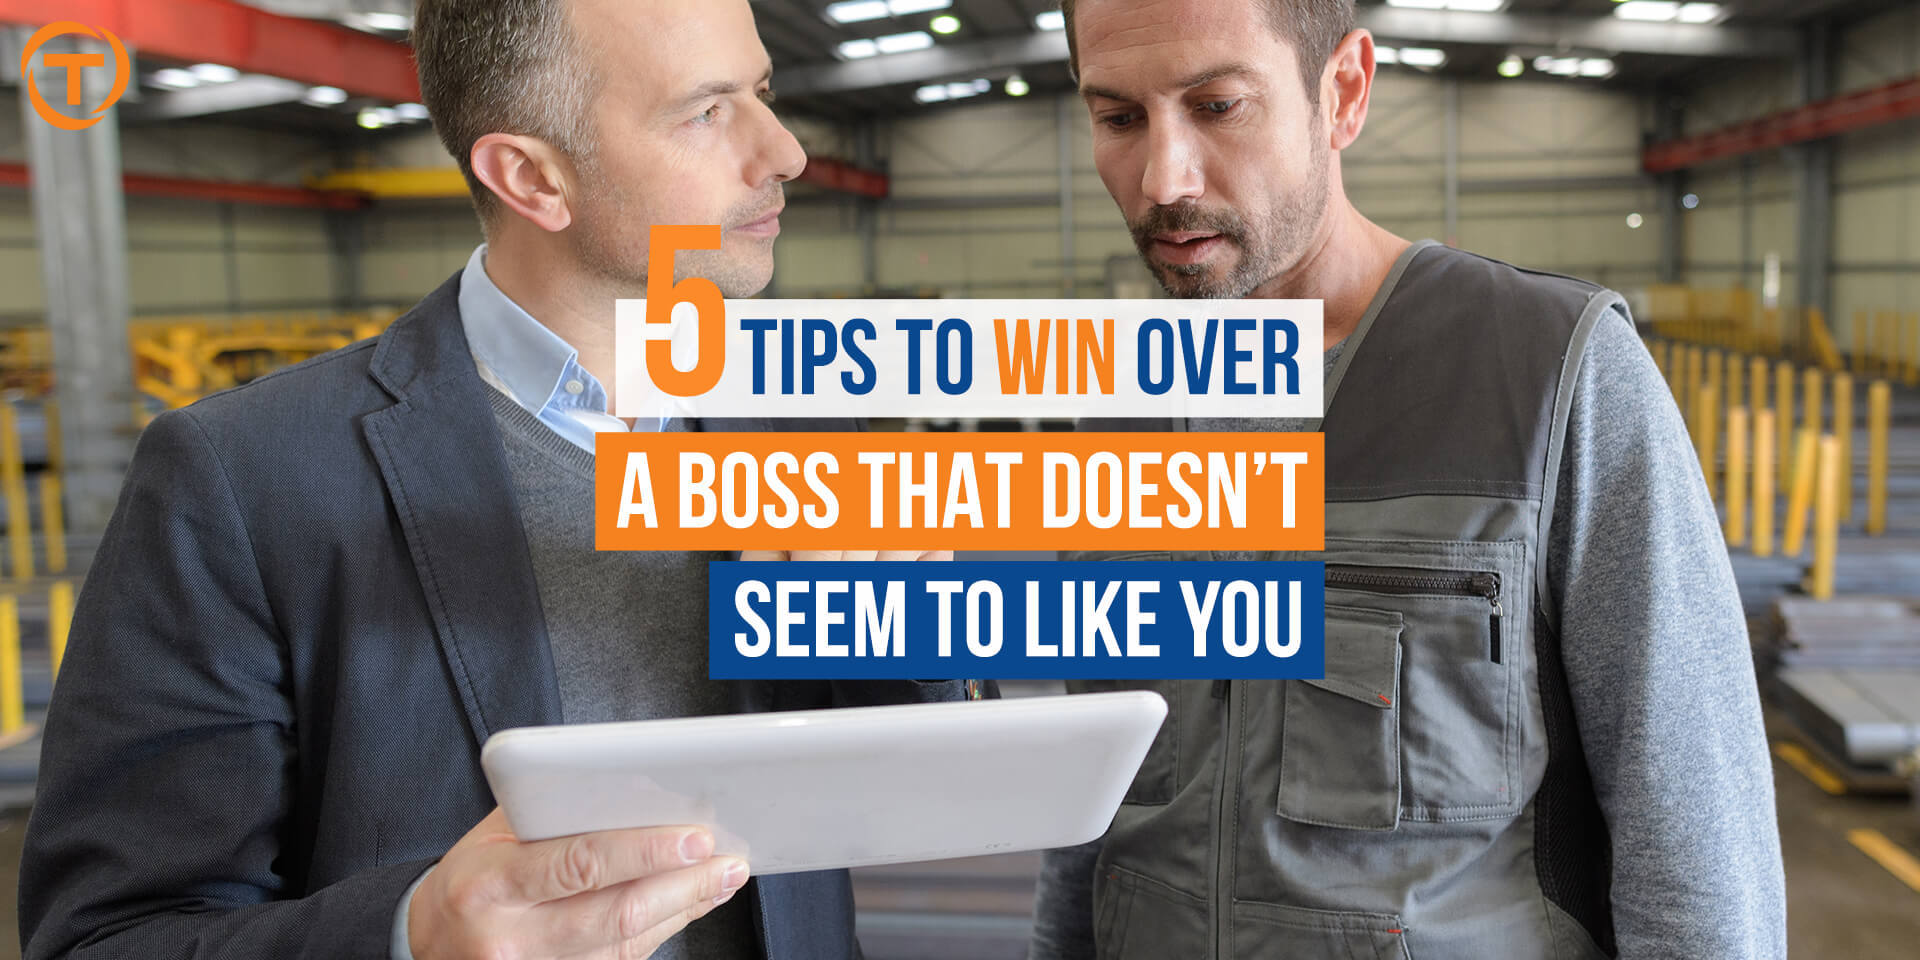 Blog 5 Tips To Win Over A Boss